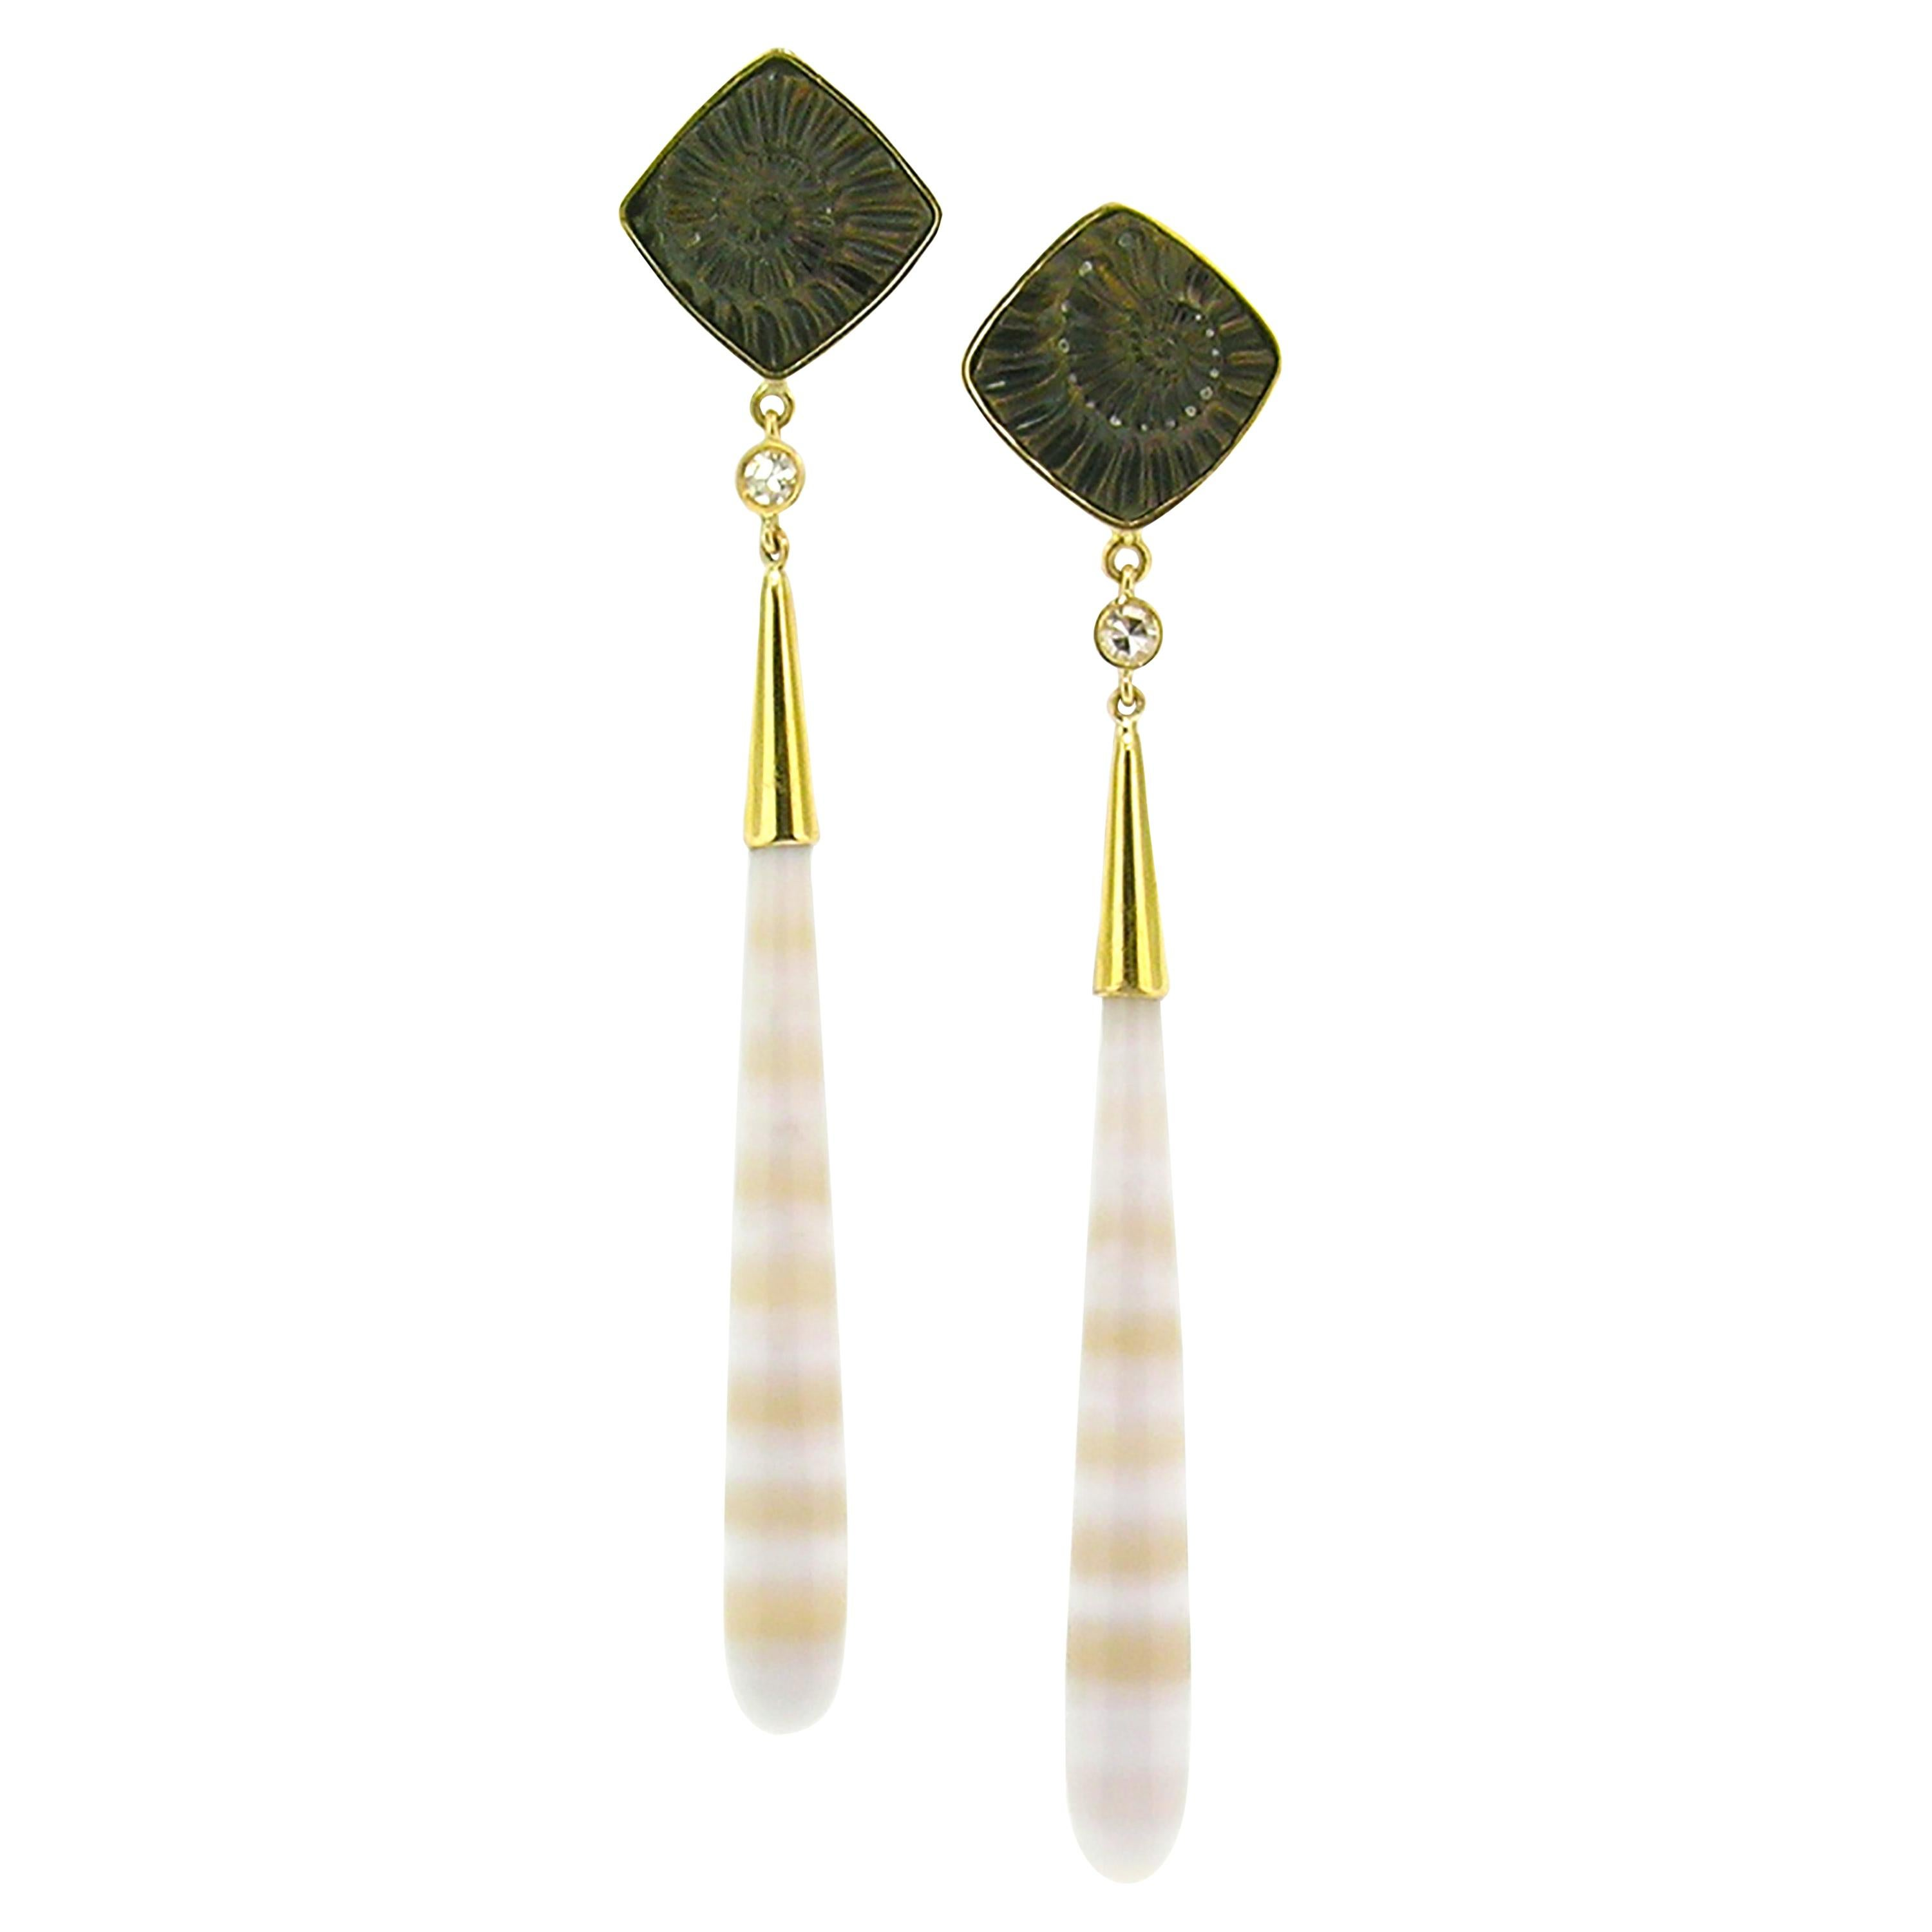 Fossil Ammonite and Banded Agate 18kt Earrings by Cynthia Scott Jewelry